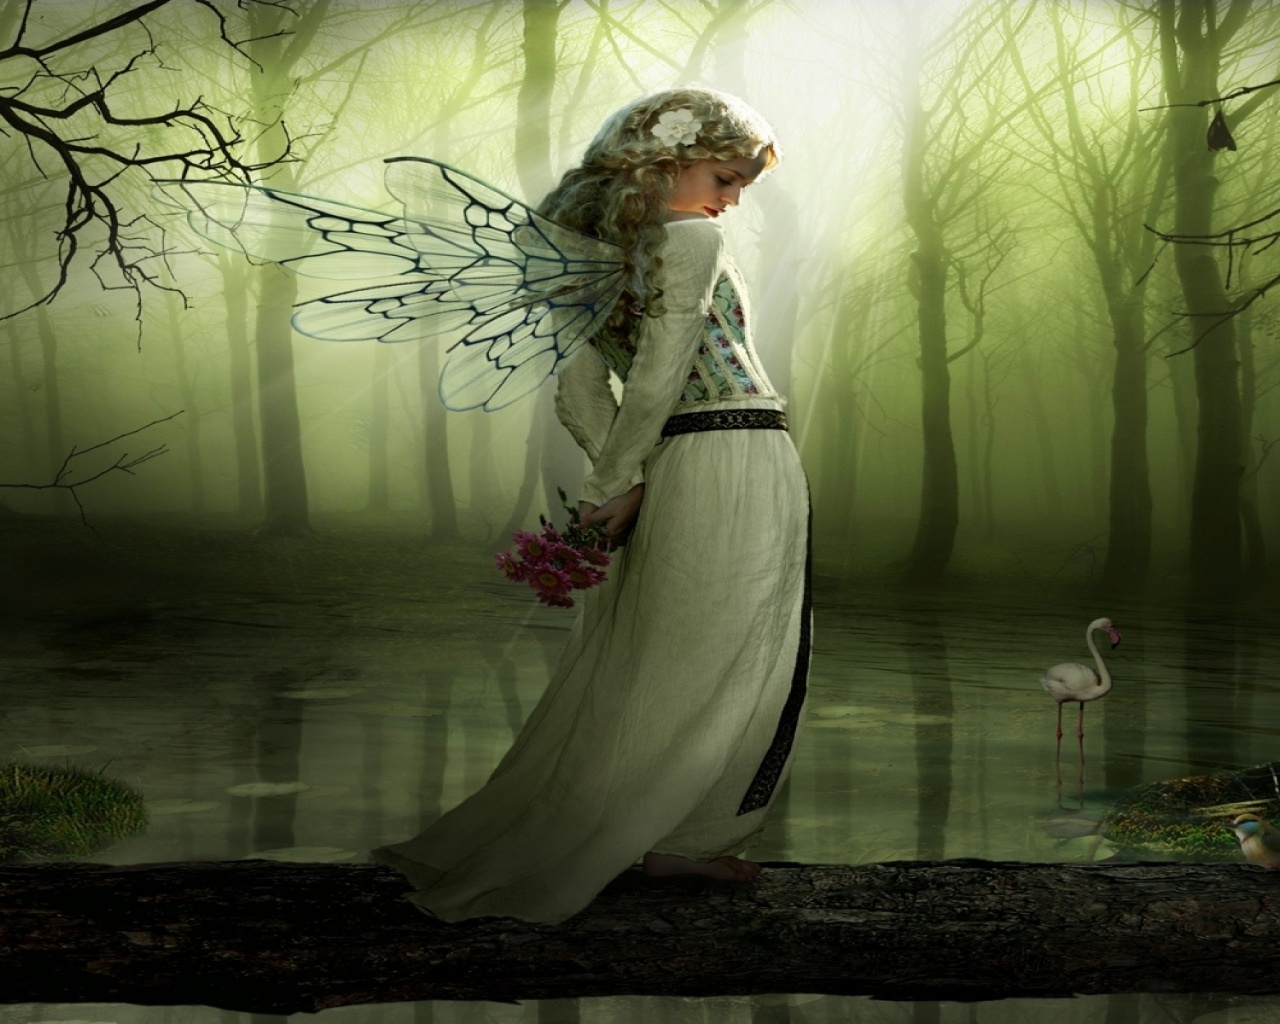 Forest Girl Wallpaper 1280x1024 Wood Lonely Fairy Water Birds Desktop Pc And Mac